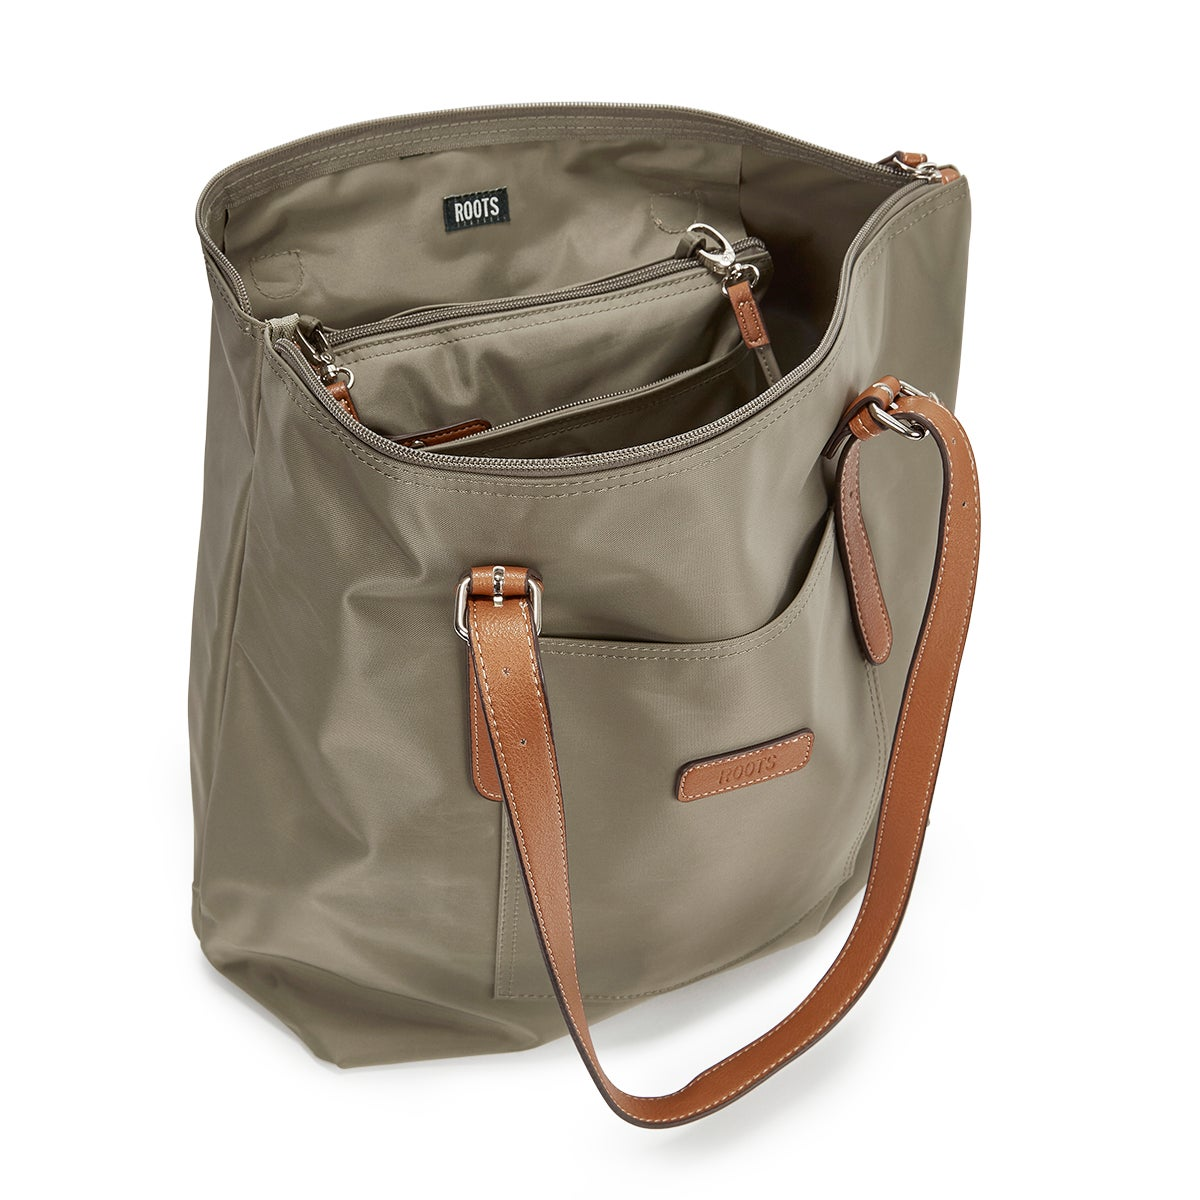 Lds Roots73 khki 2 in 1 tote w/crossbody